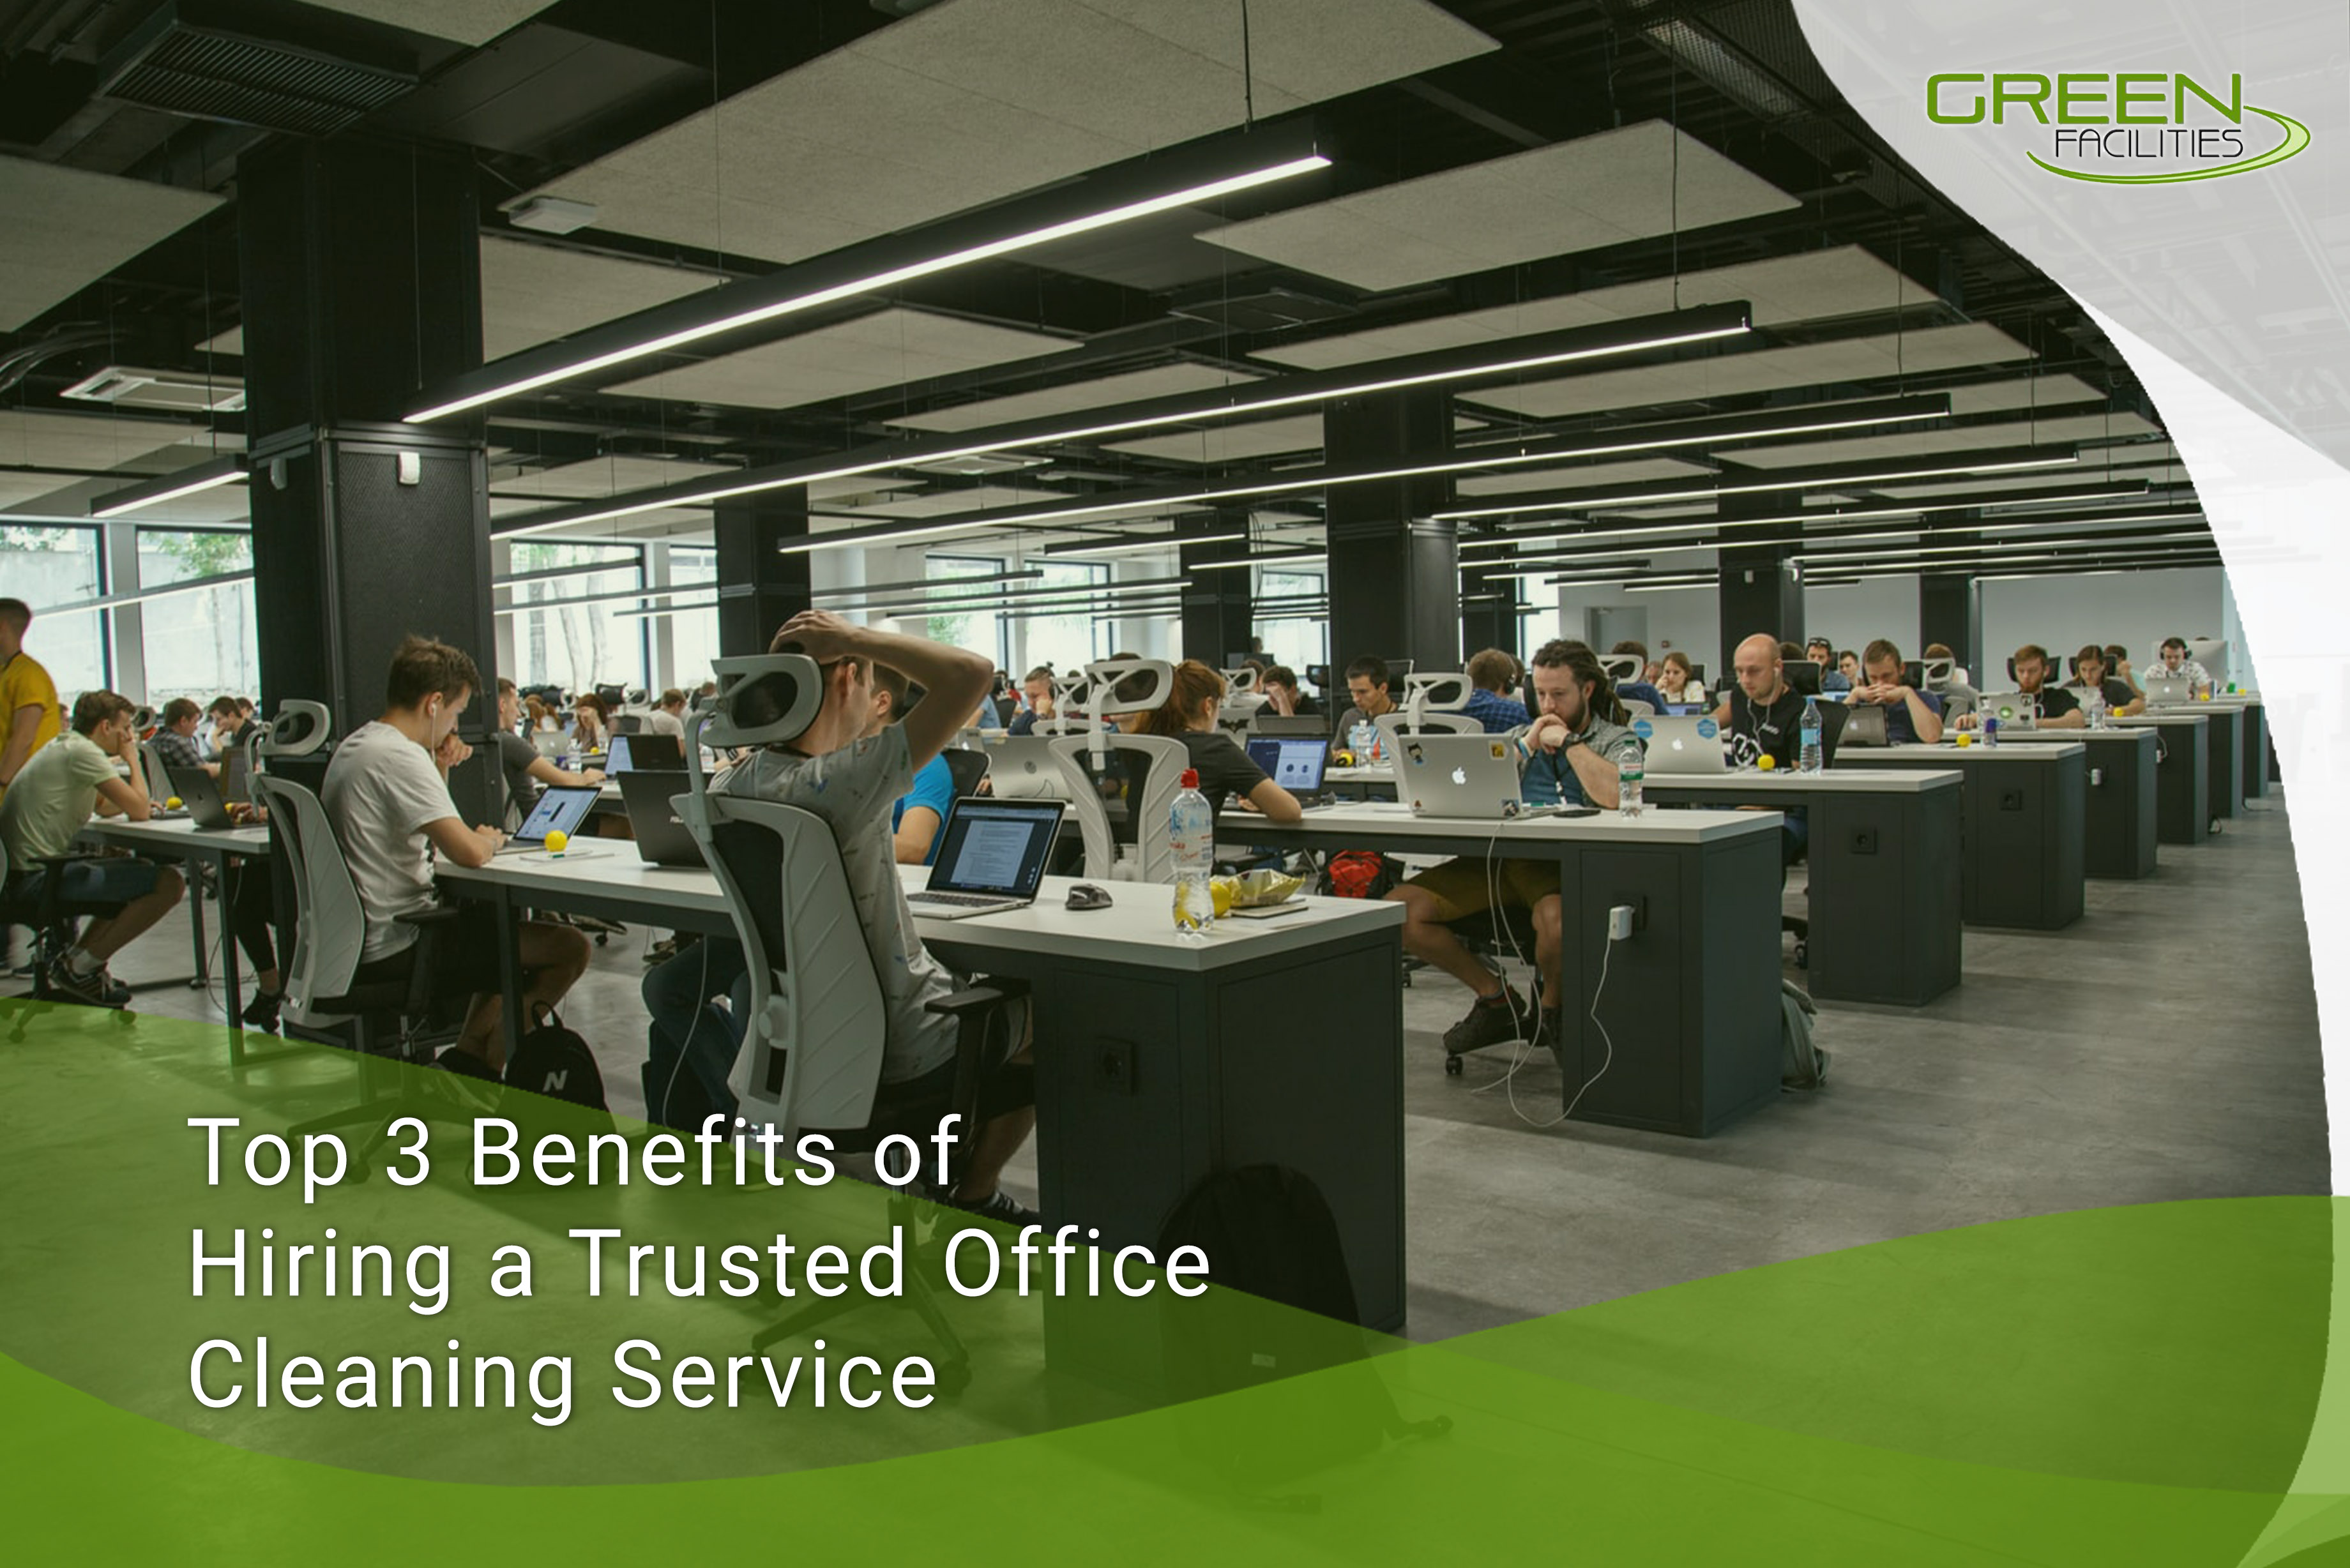 Top 3 Benefits of Hiring a Trusted Office Cleaning Service